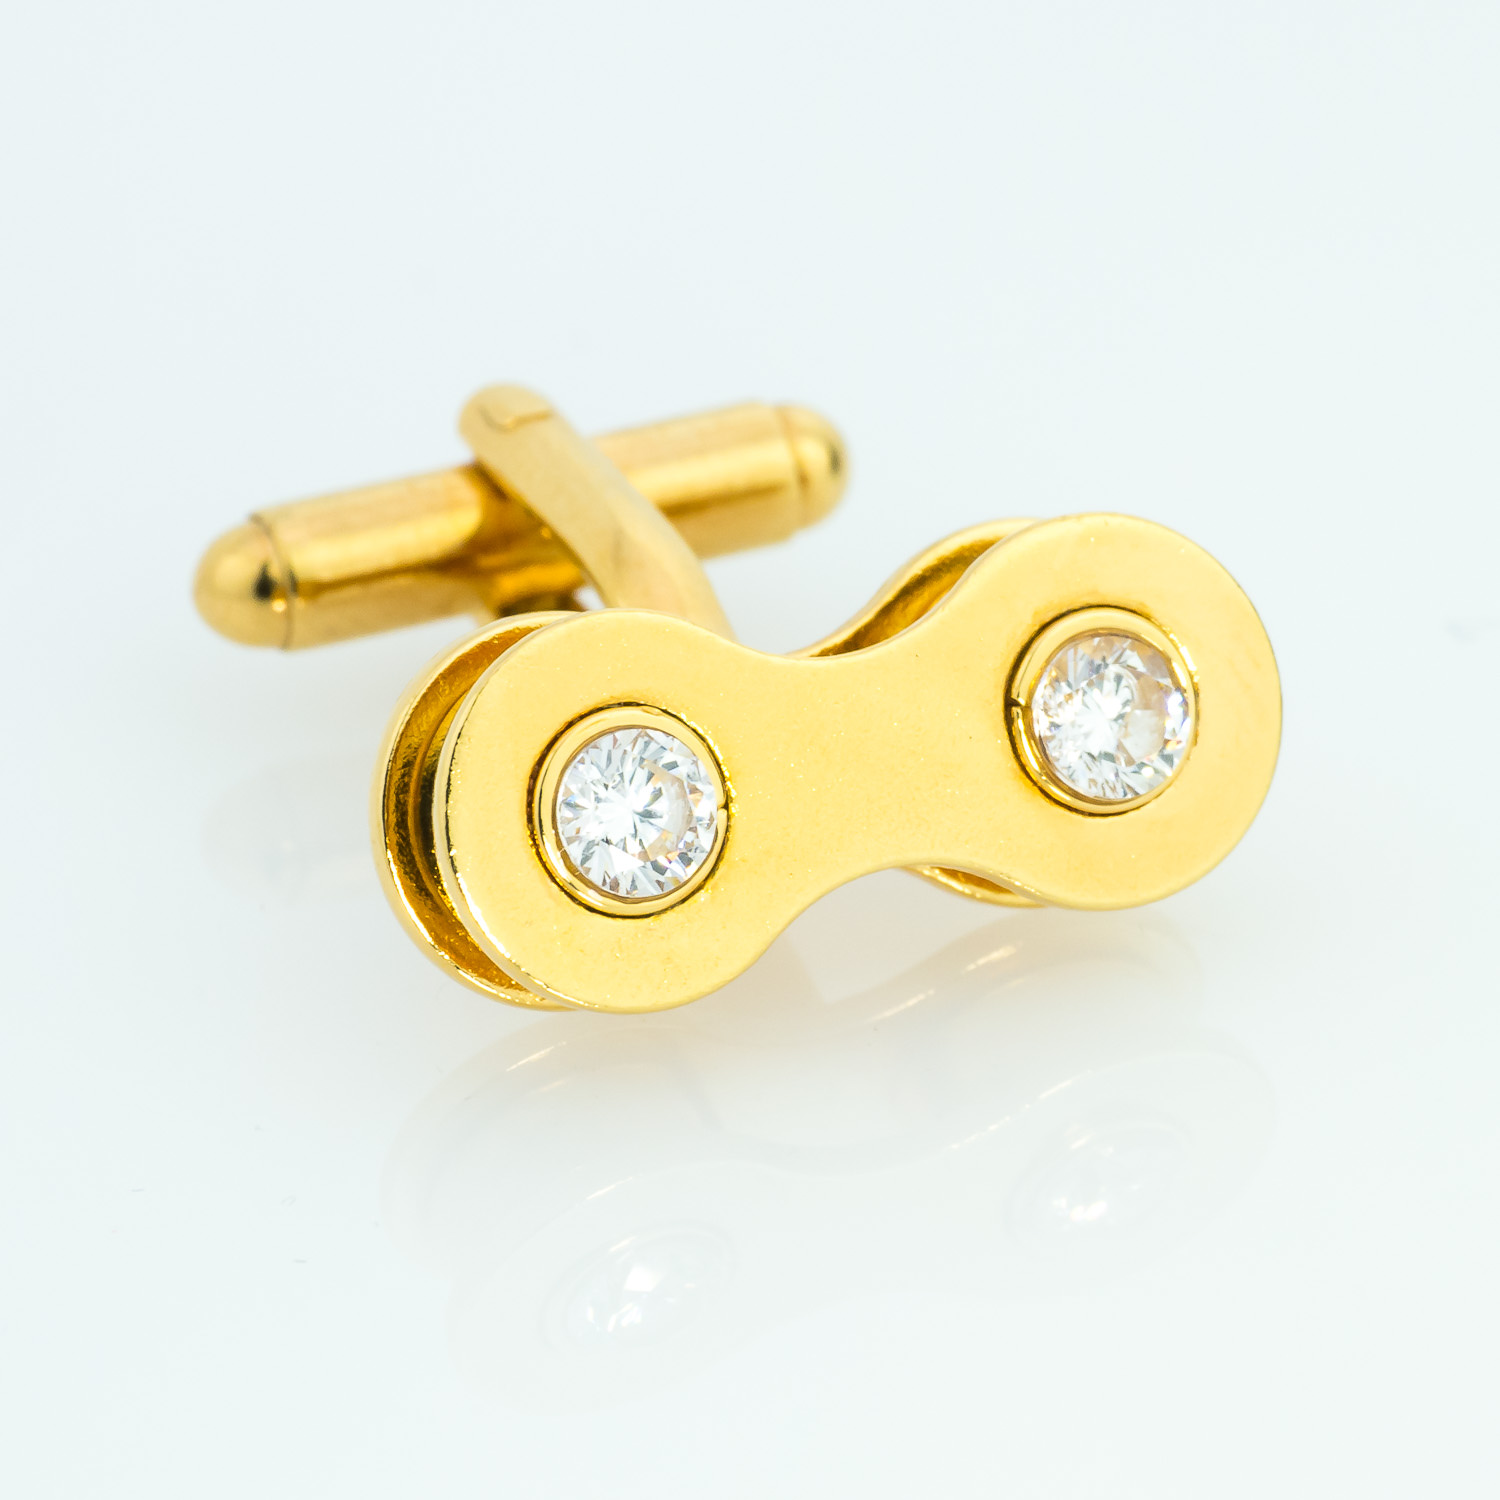 Gold and created diamond cufflinks. Made from bike chain.